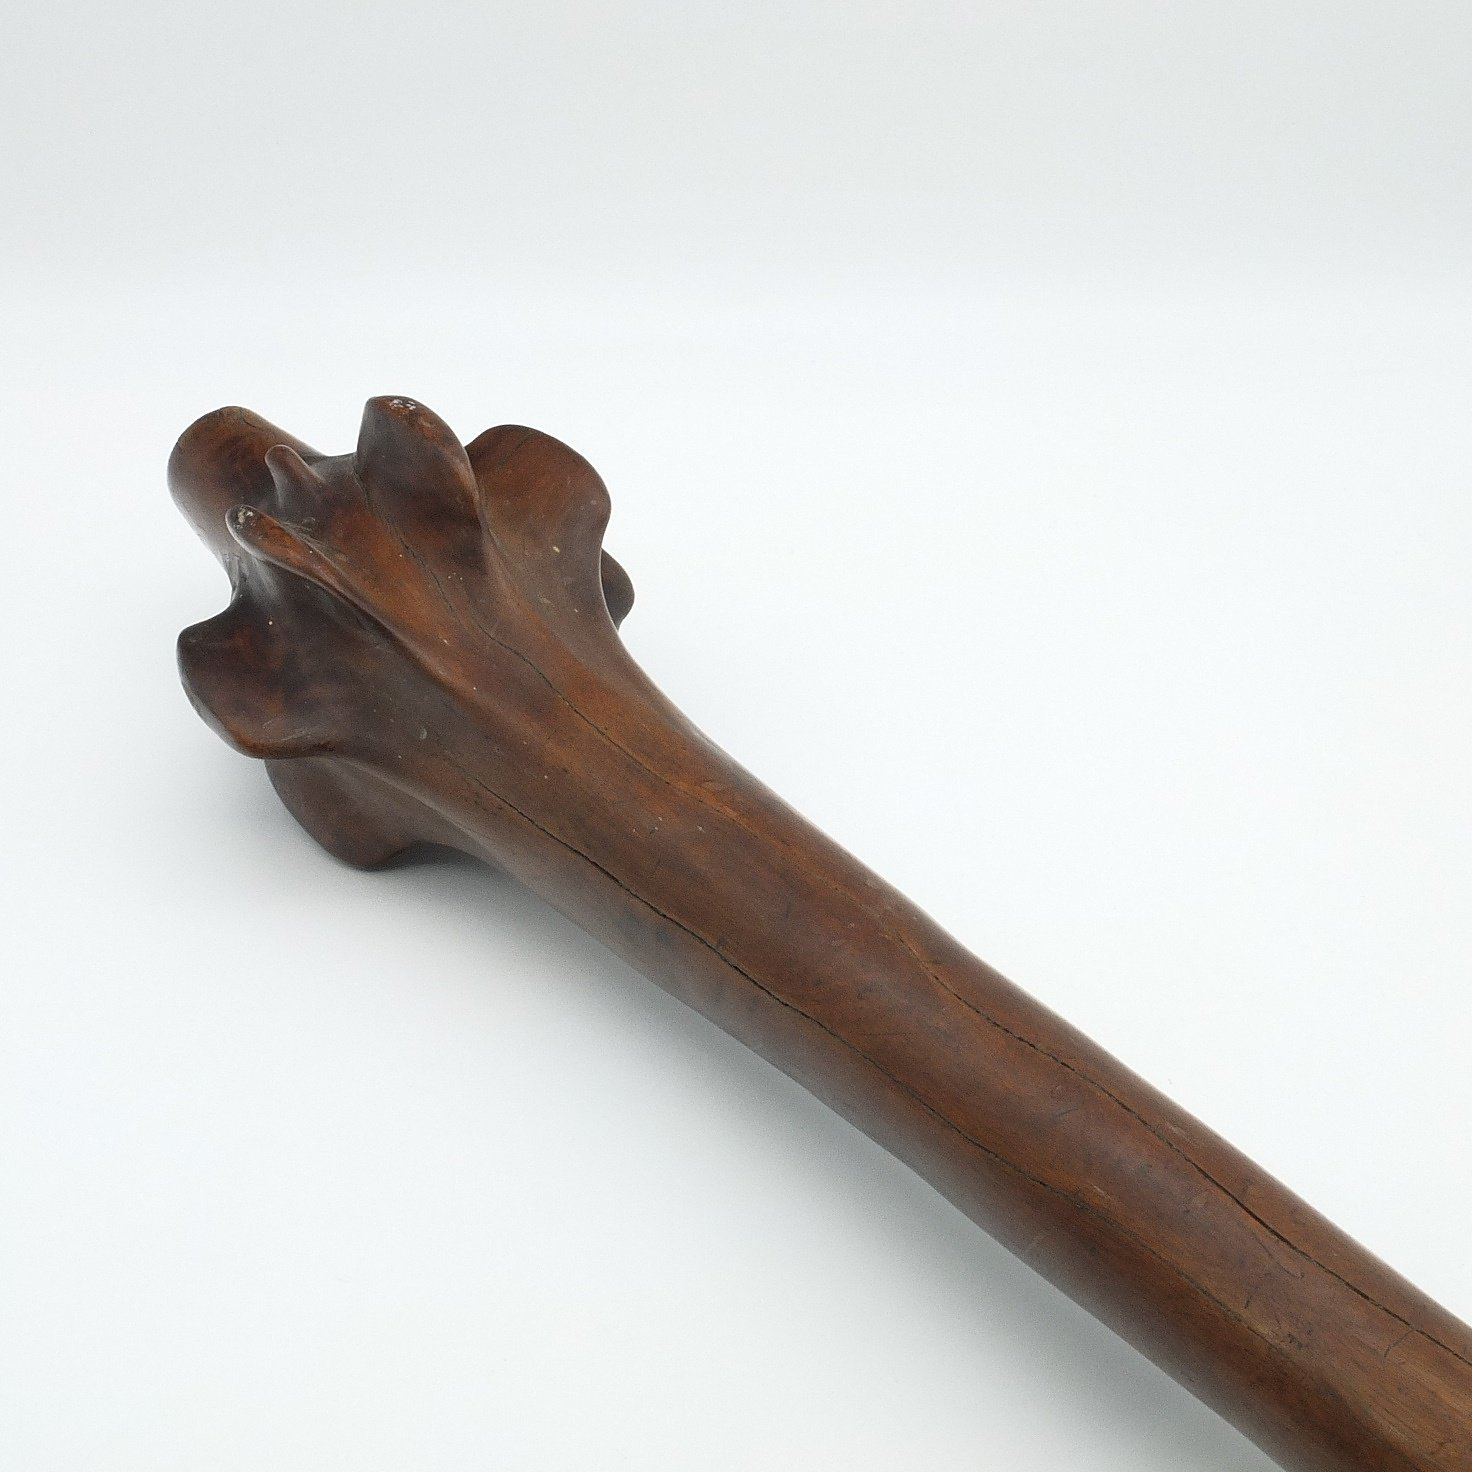 'Fijian Waka Club with Root Head and Carved Geometric Designed Handle'